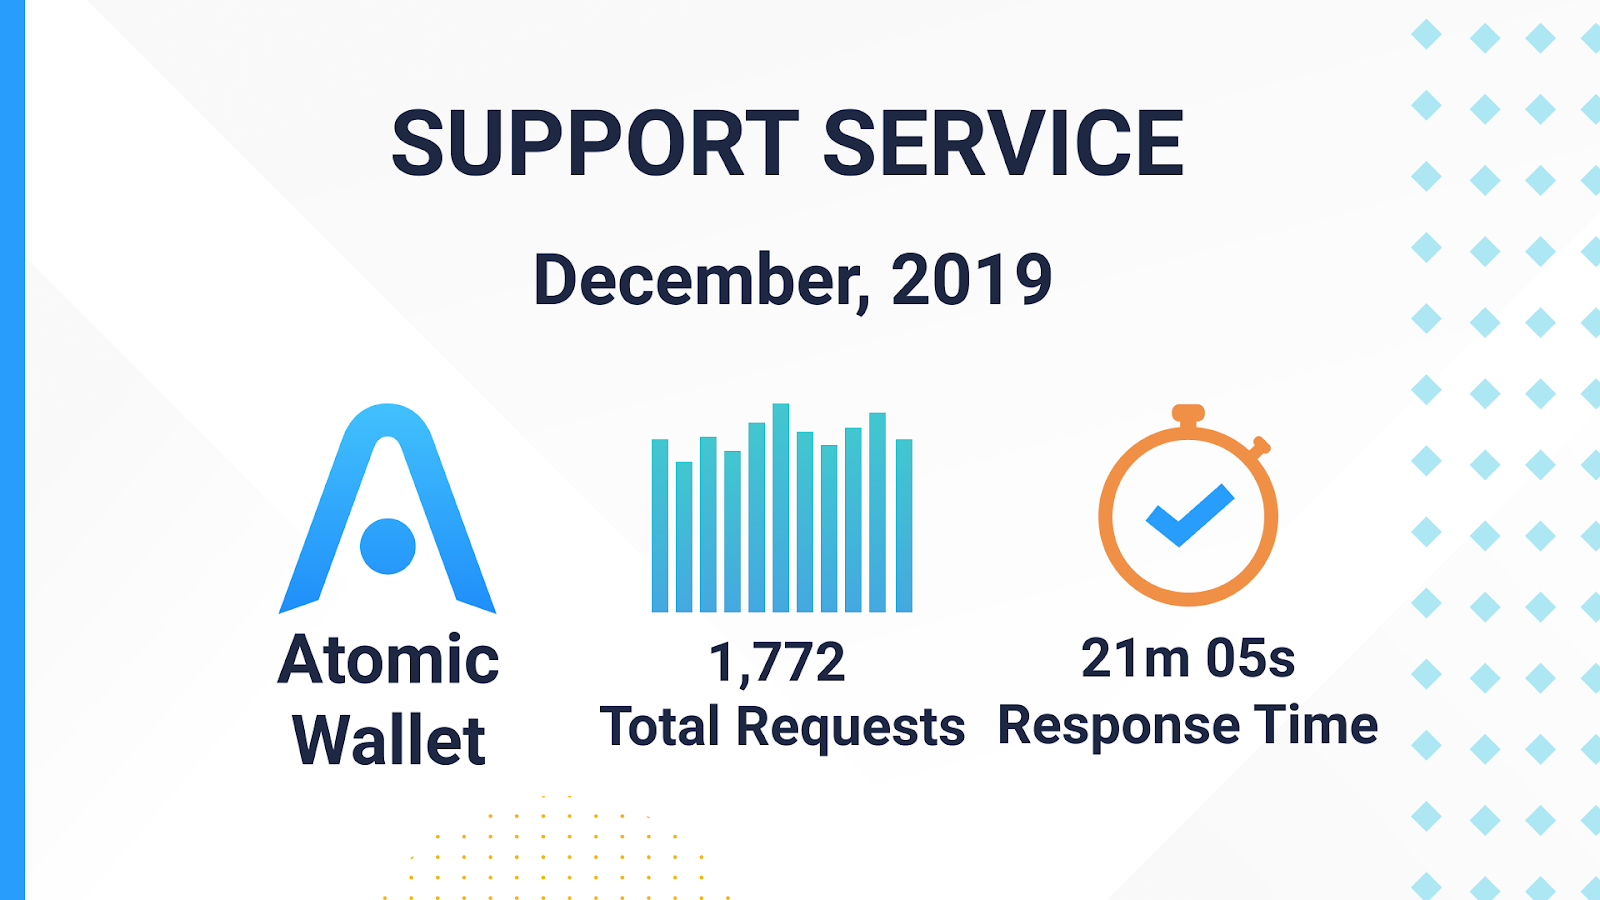 support service in december